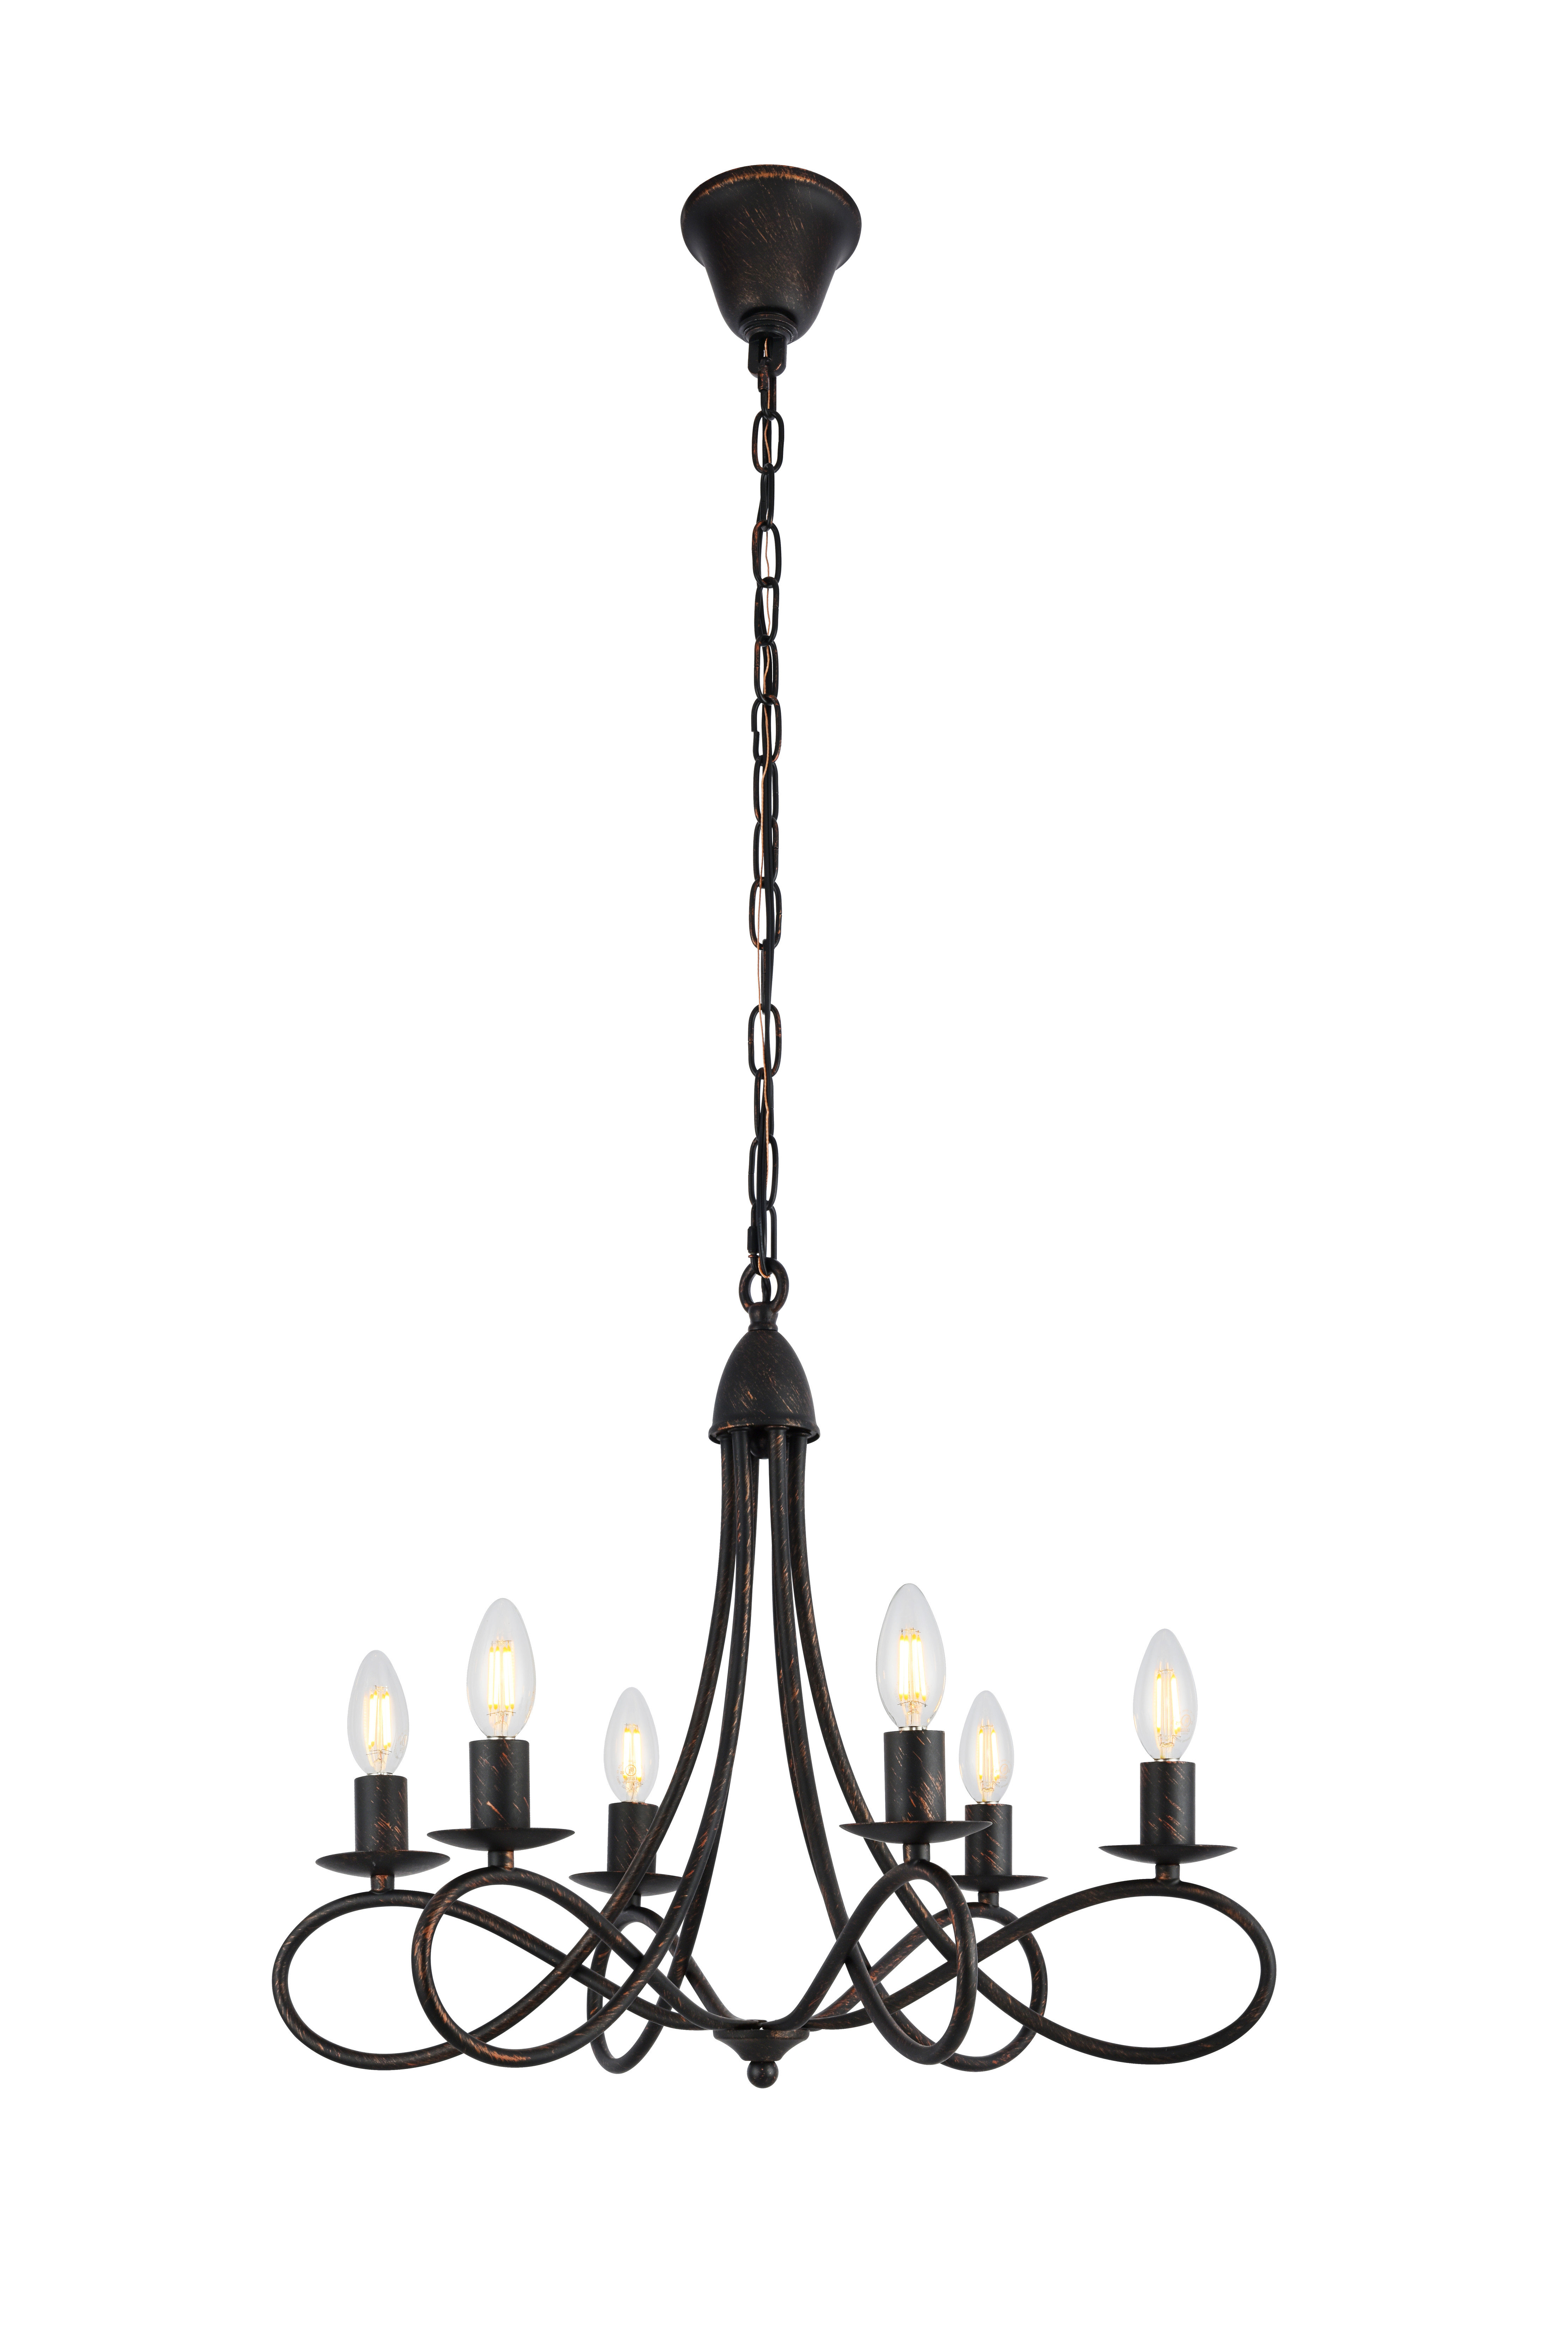 Newest Shaylee 5 Light Candle Style Chandeliers With Regard To Farmhouse Chandeliers (View 20 of 25)